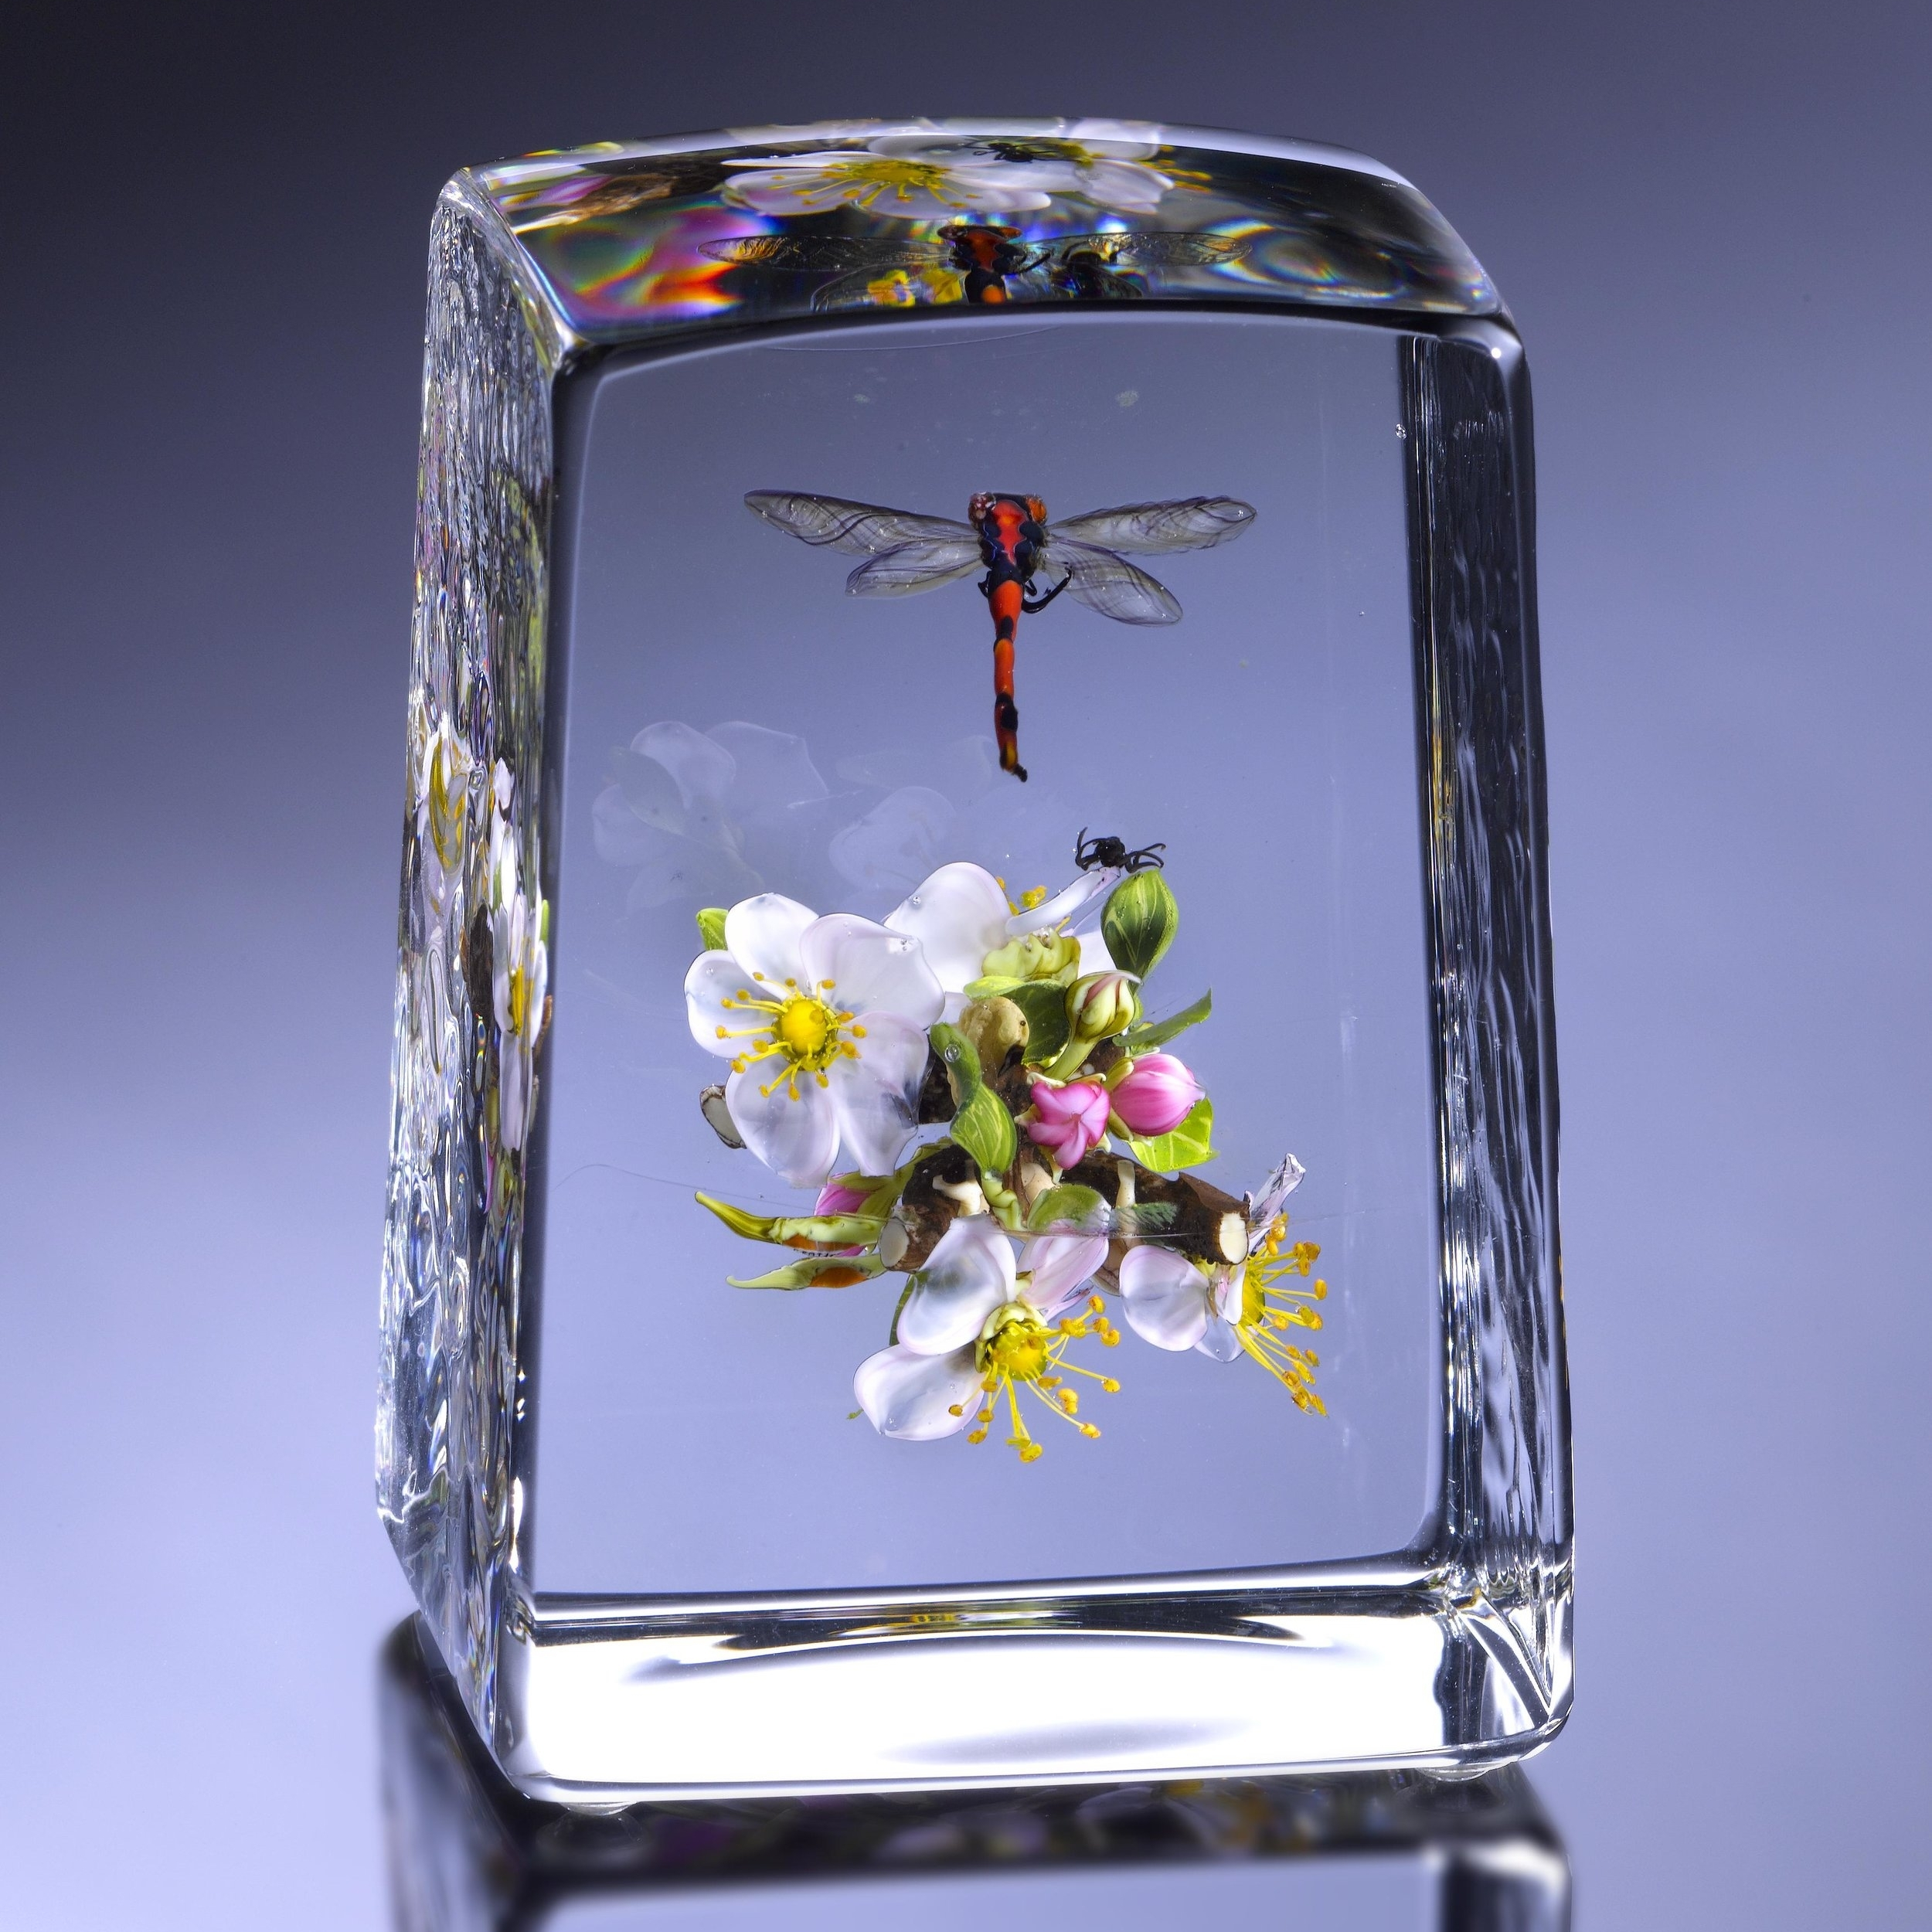 2011; Apple Blossoms with Buds, Human Form and Insects; H. 3 13/16 inches x L. 2 11/16 inches x W. 2 1/2 inches